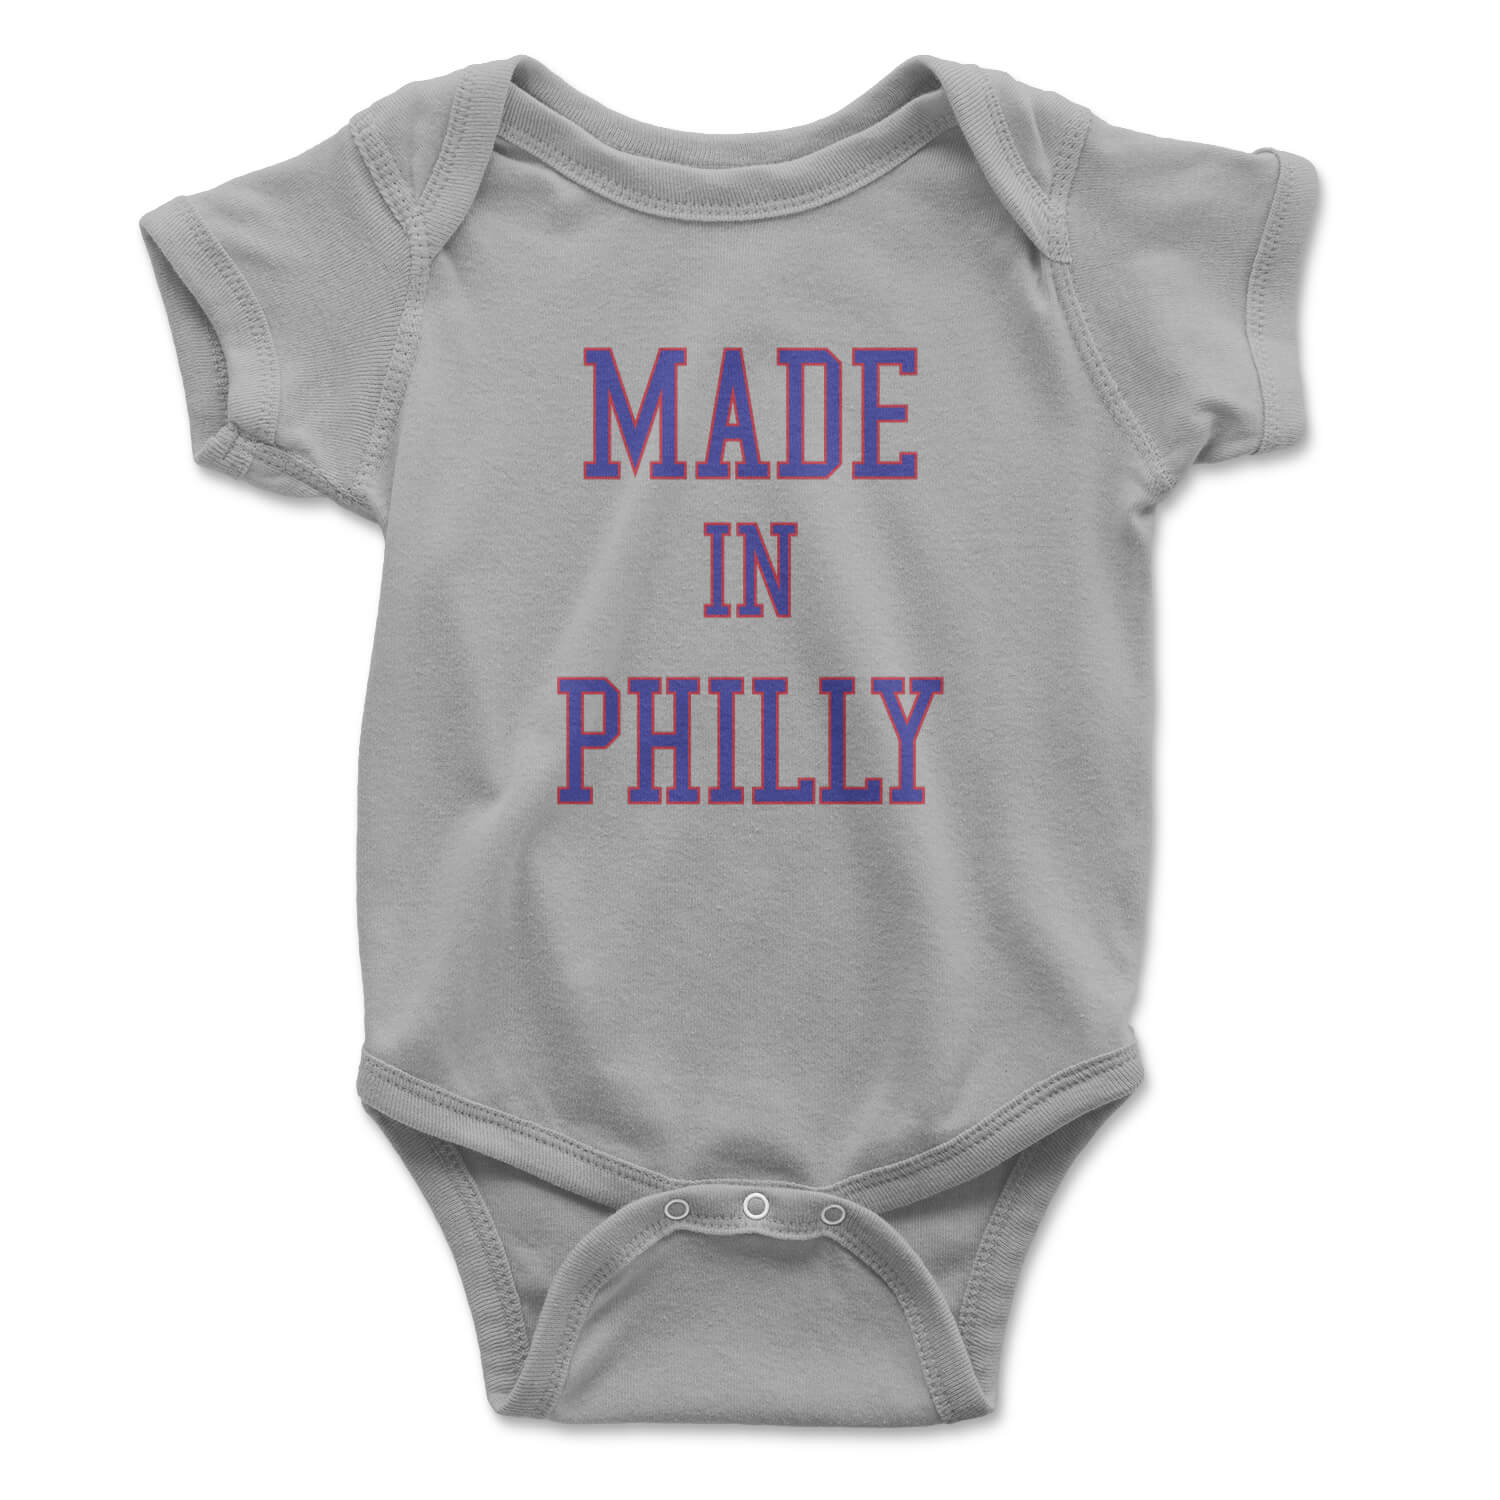 made in philly heather grey baby infant onesie from phillygoat